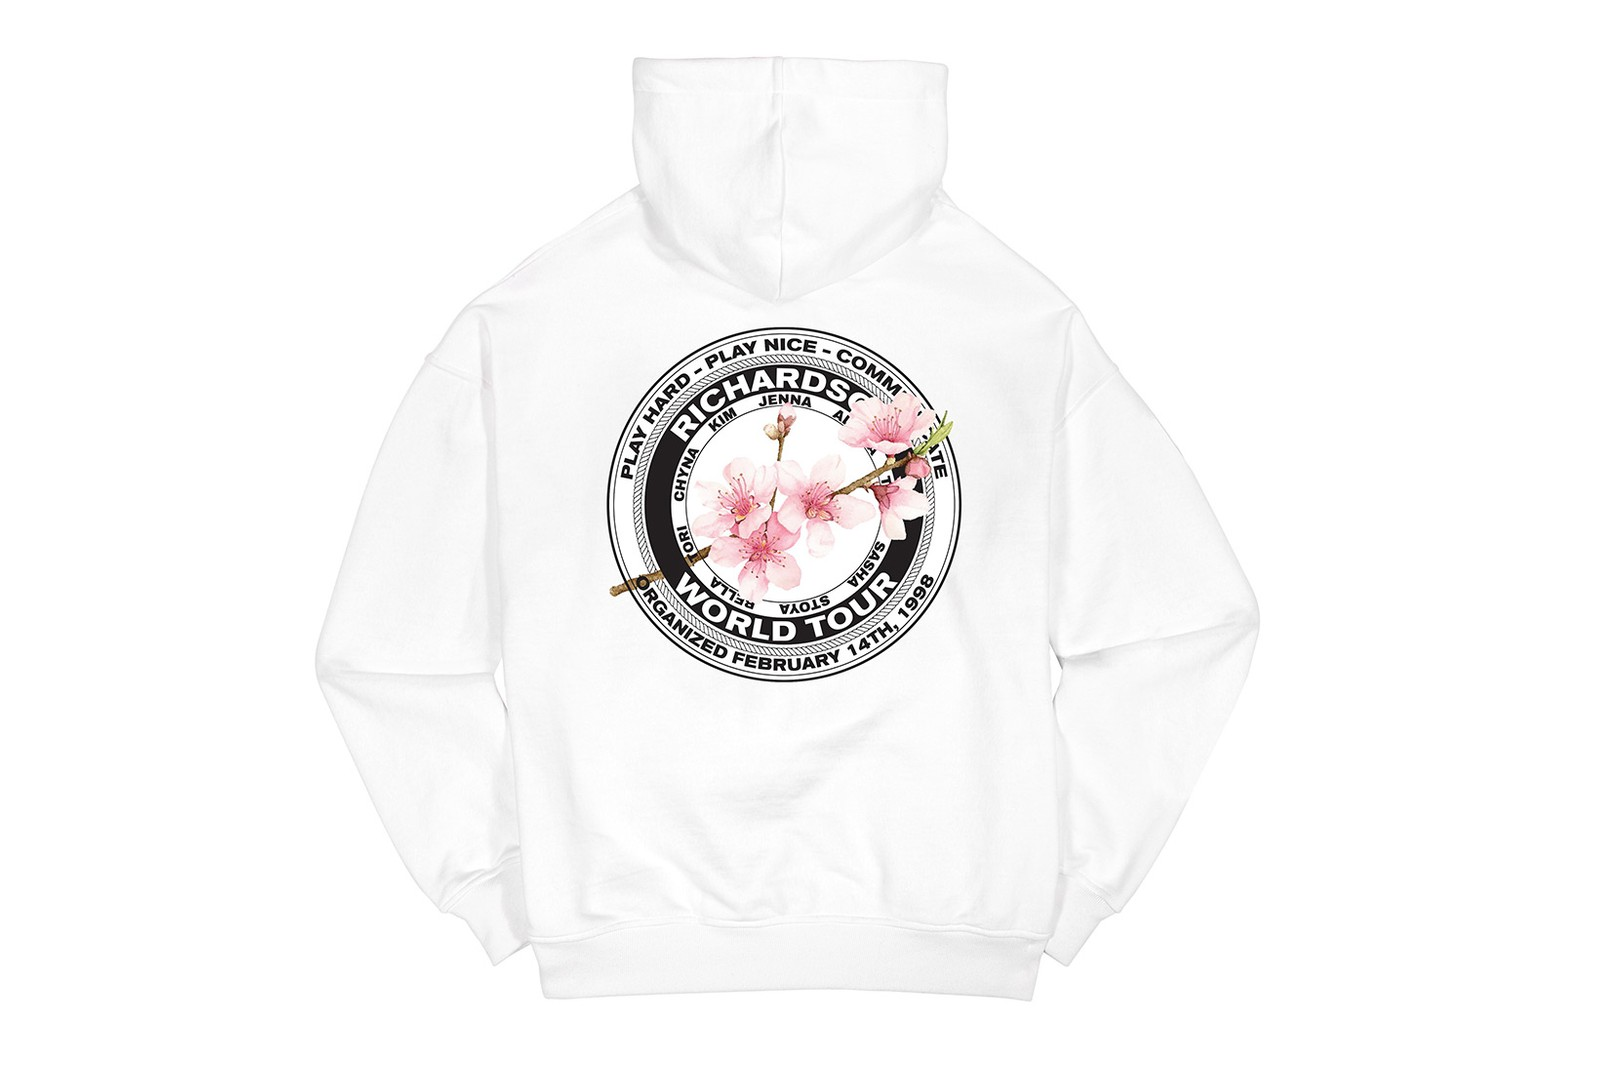 Richardson Cherry Blossom Teamster Capsule Collection Lala Takahashi Spring